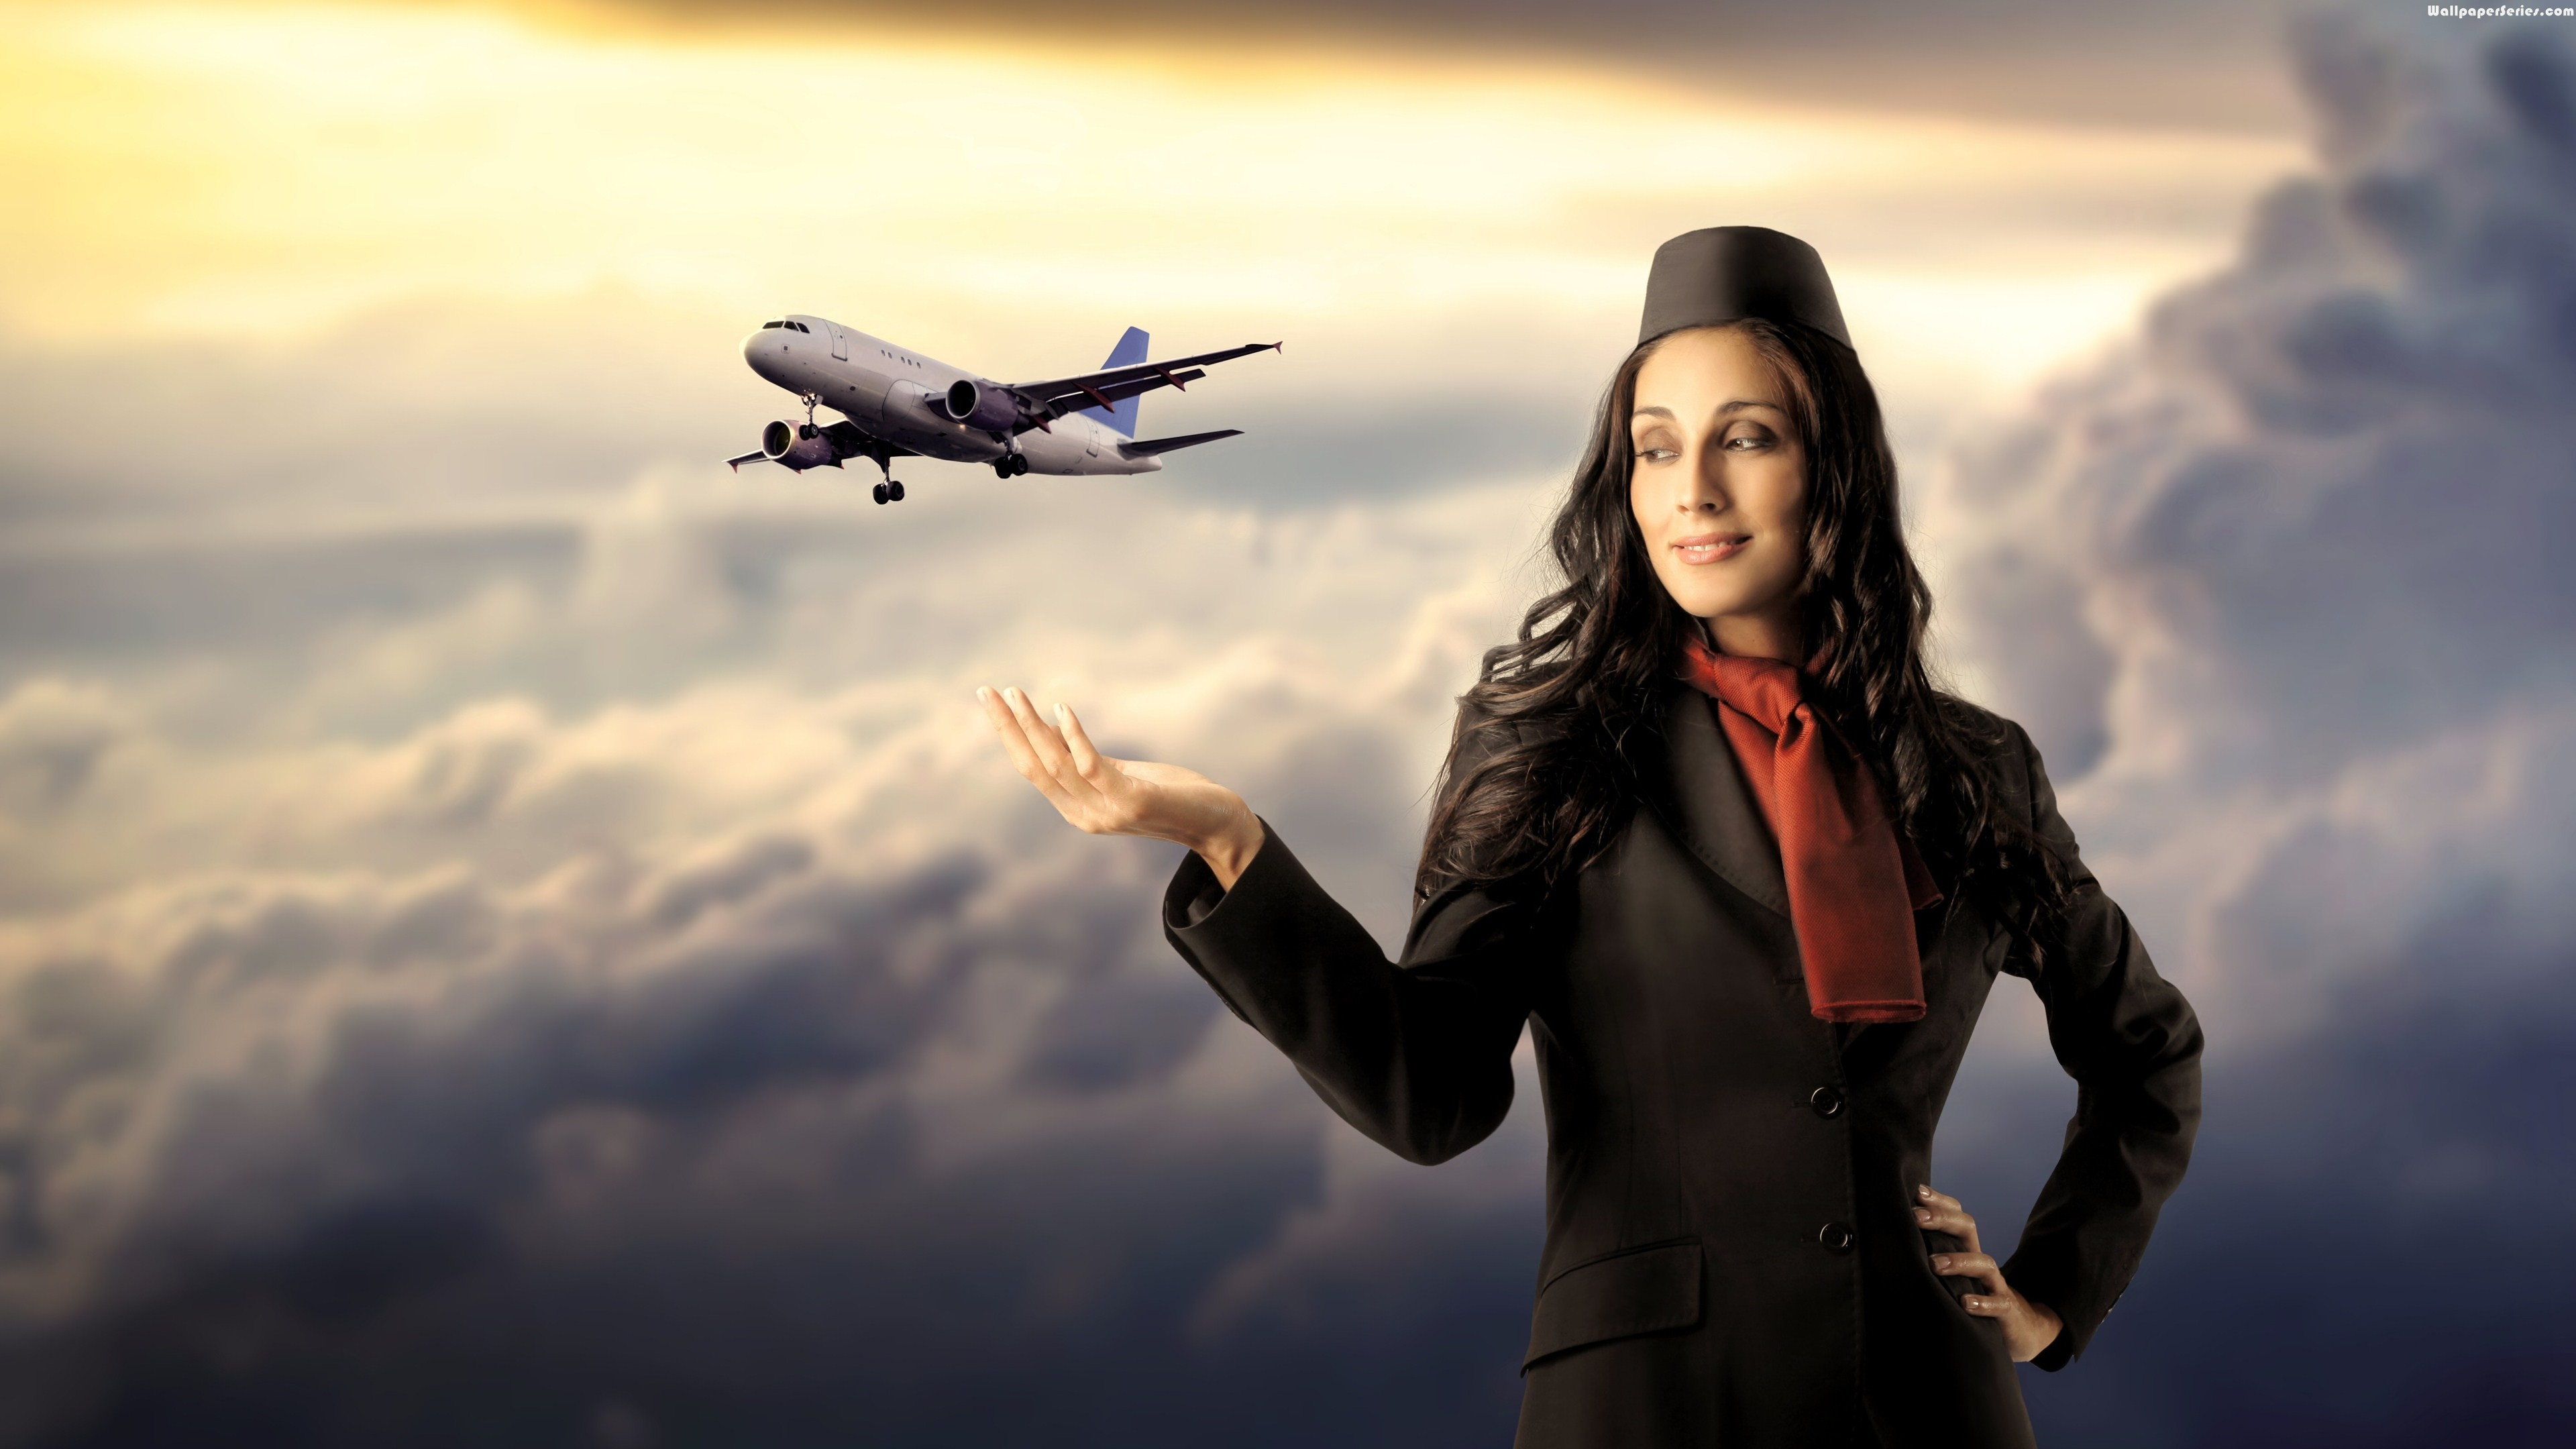 Flight Attendant Wallpaper